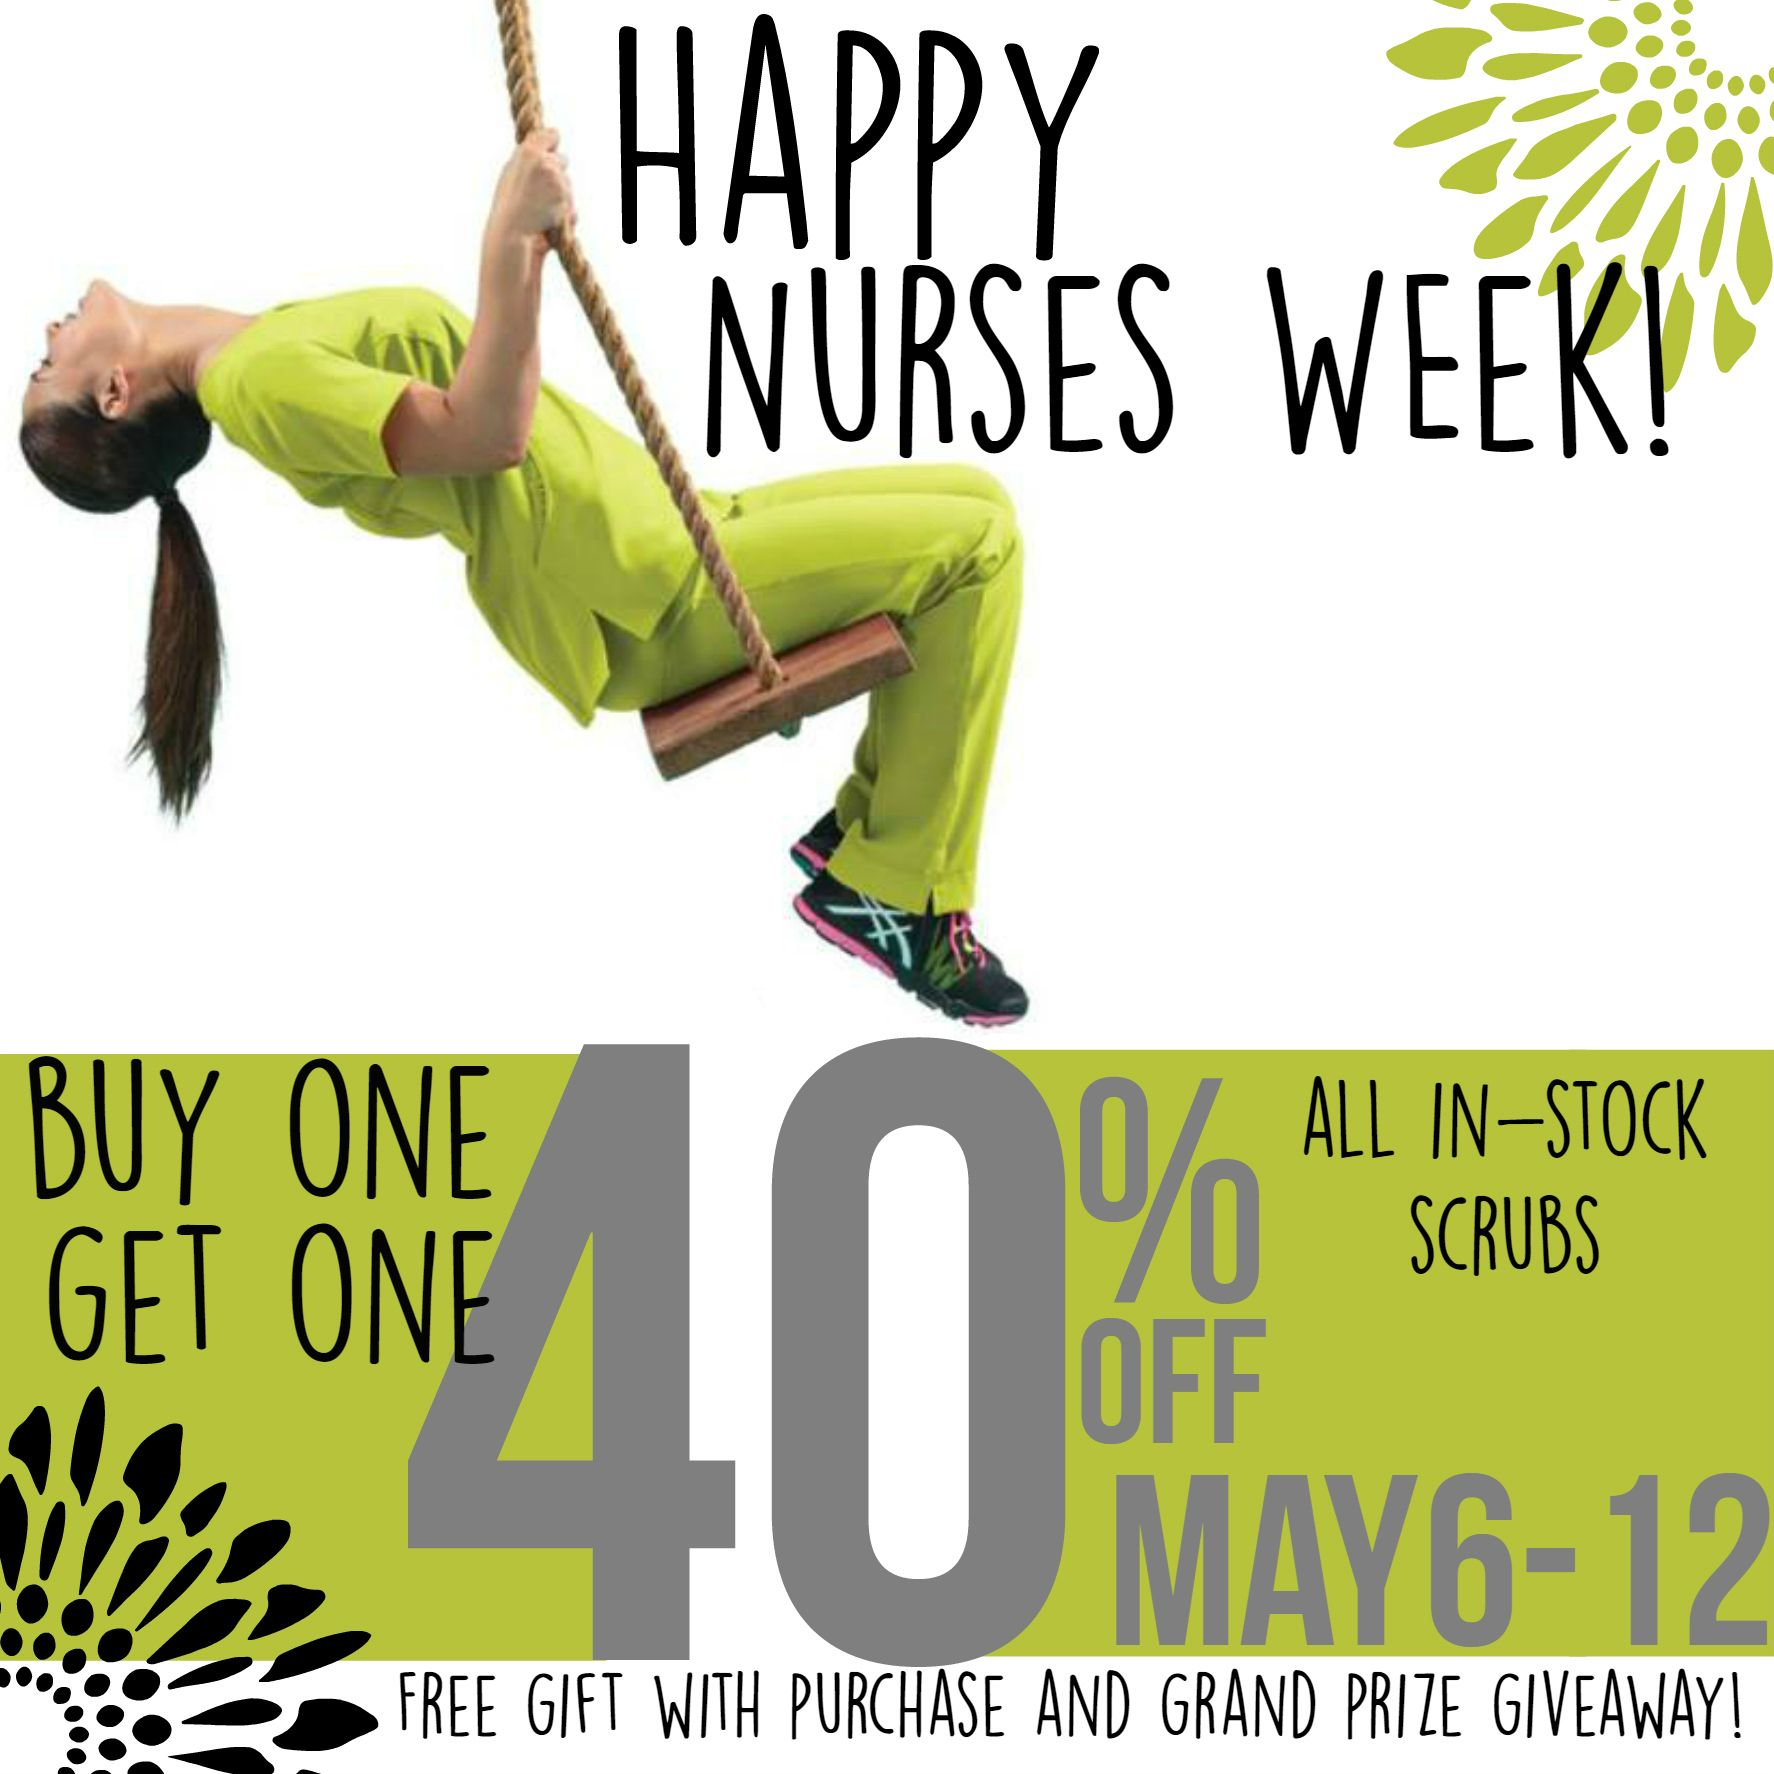 We decided to start the #NursesWeek  celebration a day early so starting Tuesday, May 5, we will have a HUGE Store-wide Sale: BOGO 40% on all in-stock scrubs. Select scrubs only $5 while supplies last. Thank you to all the medical professionals who do so much for us each and EVERY day! We just want to say thank you with an awesome sale and a free gift with purchase until May 12th! | Alegria Cherokee Store #NationalNursesWeek #NursesWeek2015 #nurses #nursing #scrubs #uniforms #CLT…